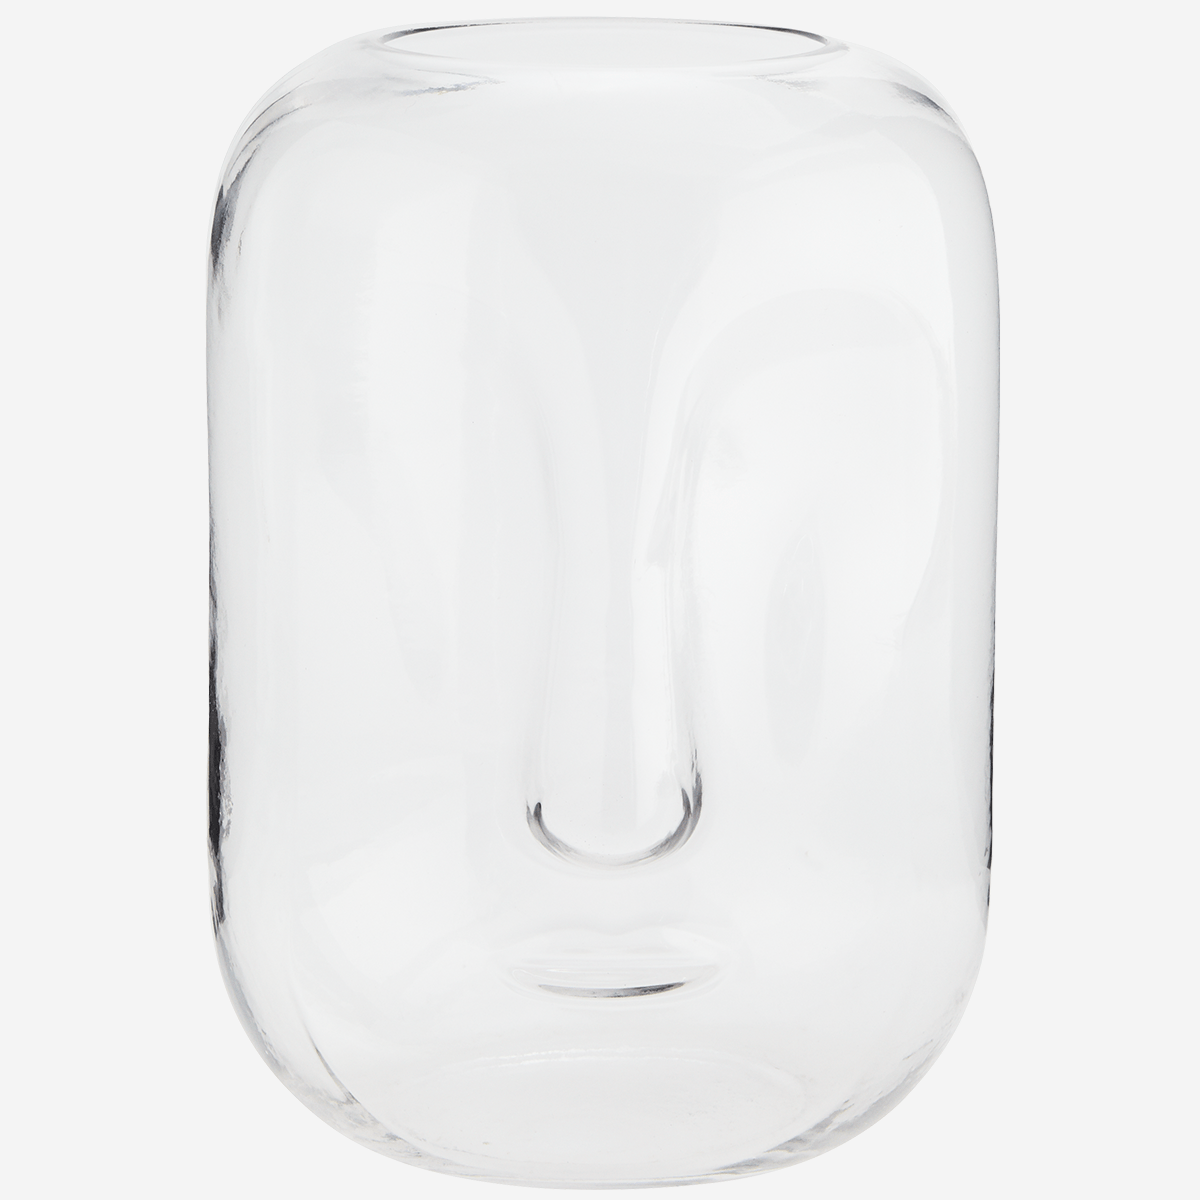 Glass Vase with Face Imprint